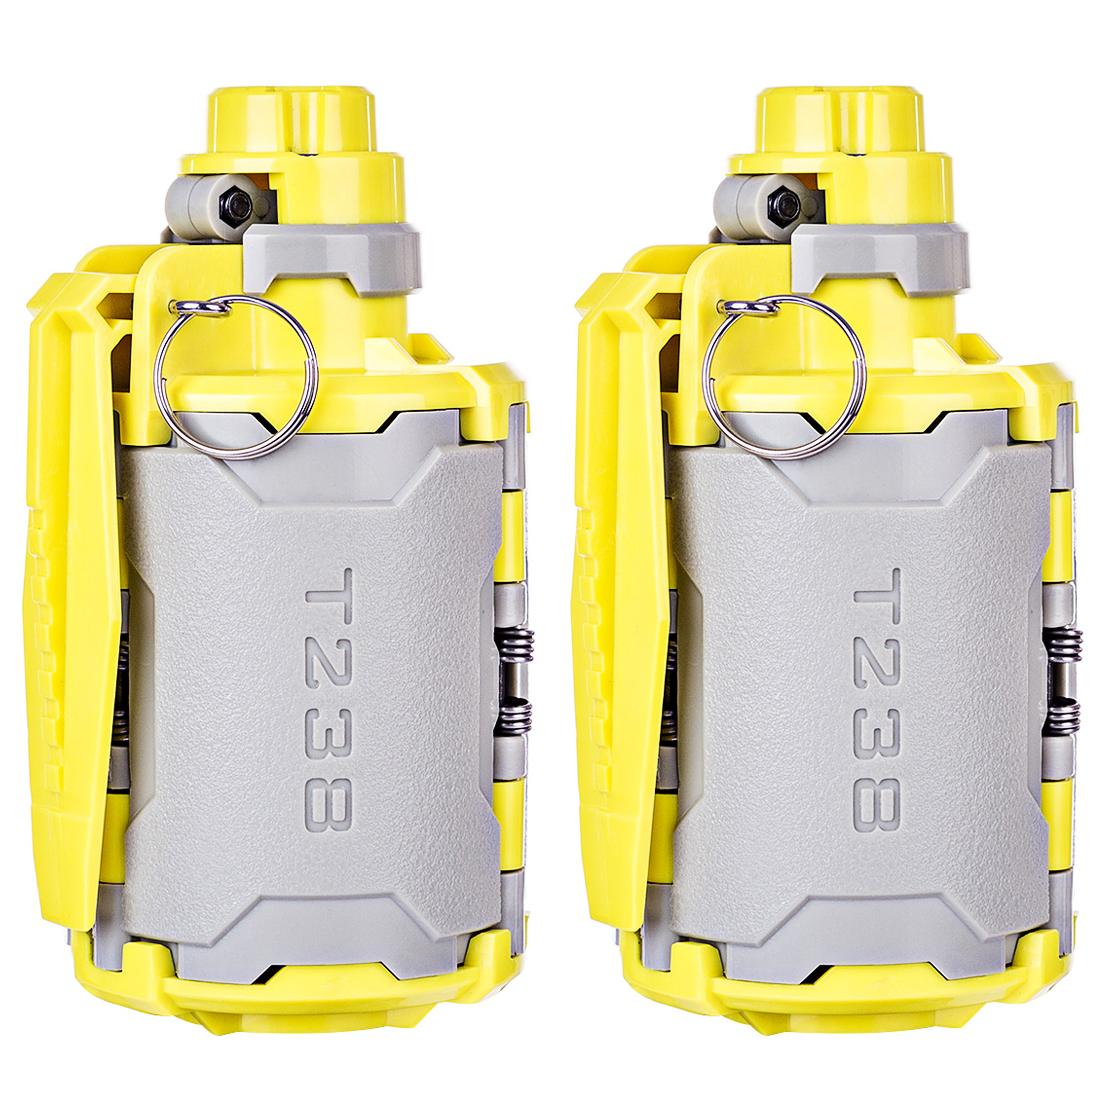 2 Pcs/Lot T238 V2 Large Capacity Water Bomb With Time-Delayed Function For Gel Ball BBs Airsoft Wargame -Grey + Yellow